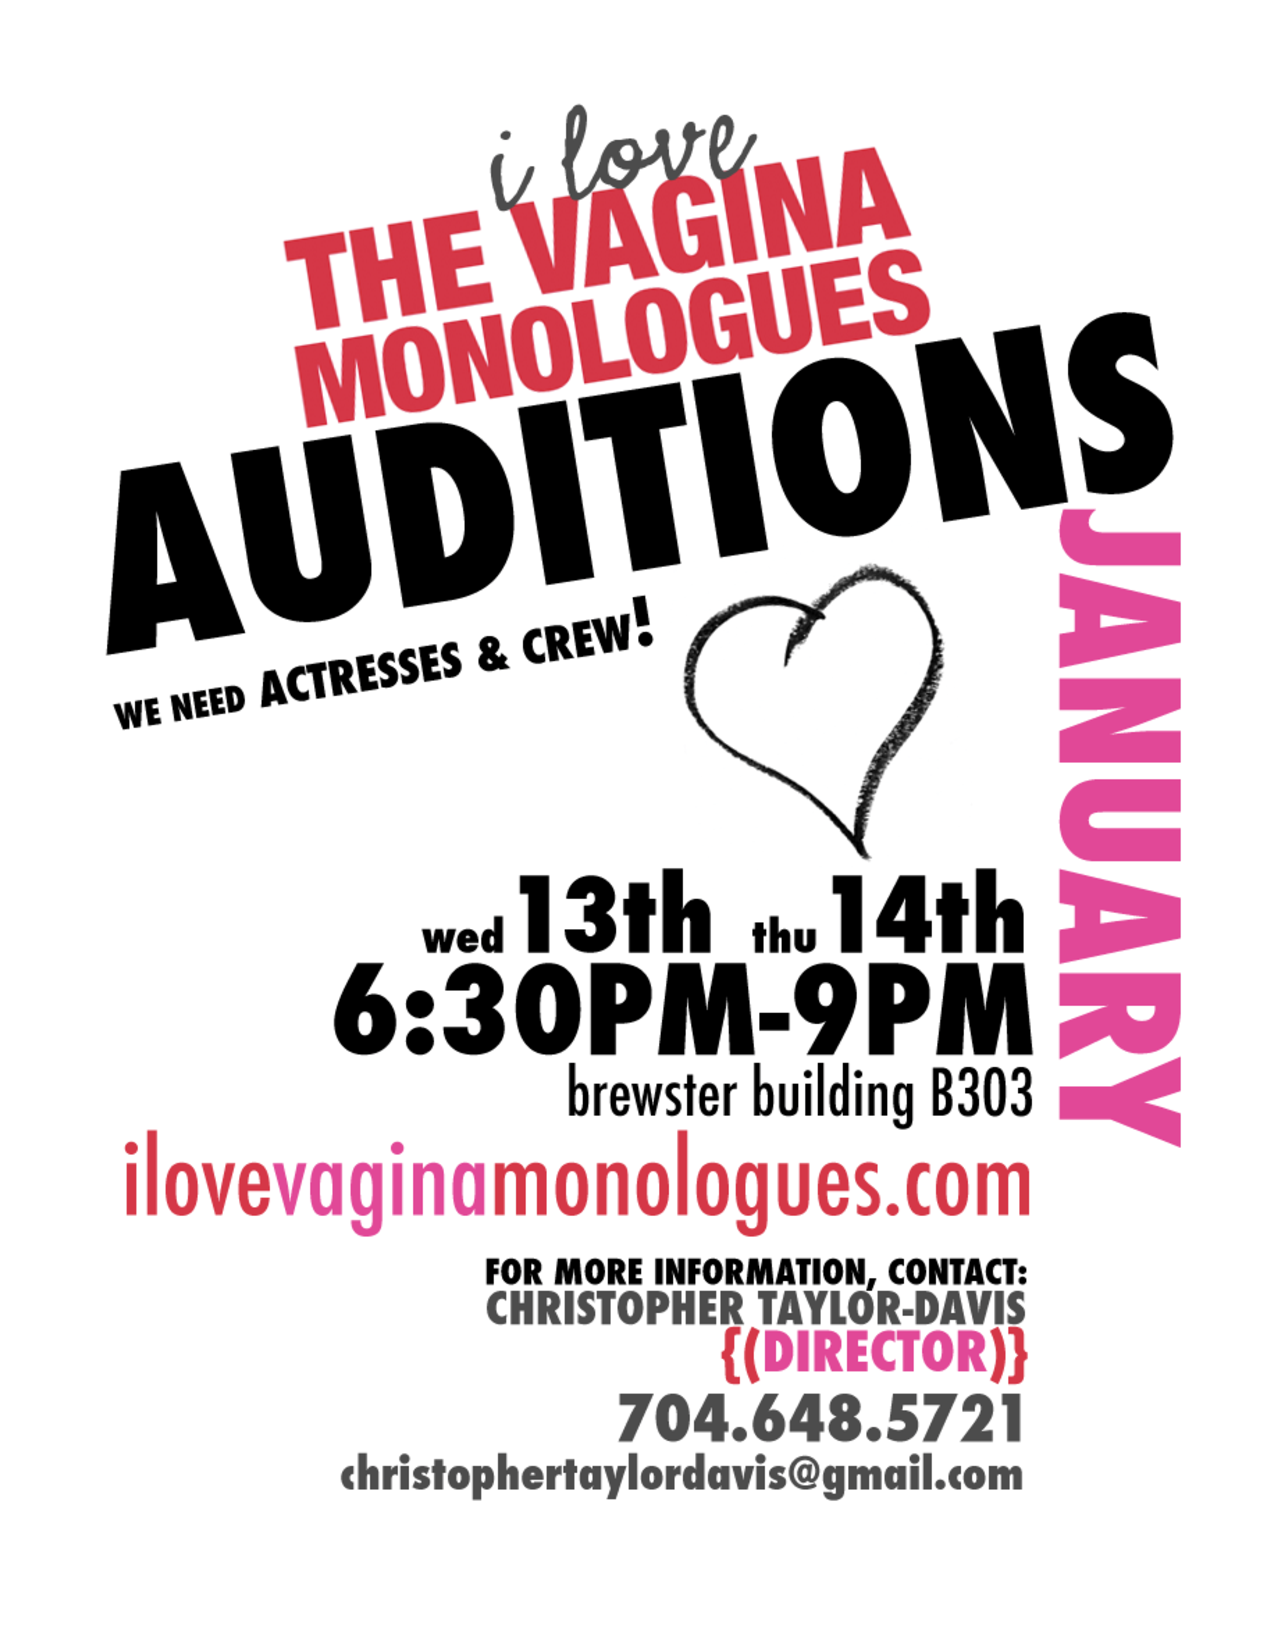 Audition flyers templates google search audition flyers audition flyers templates google search pronofoot35fo Images